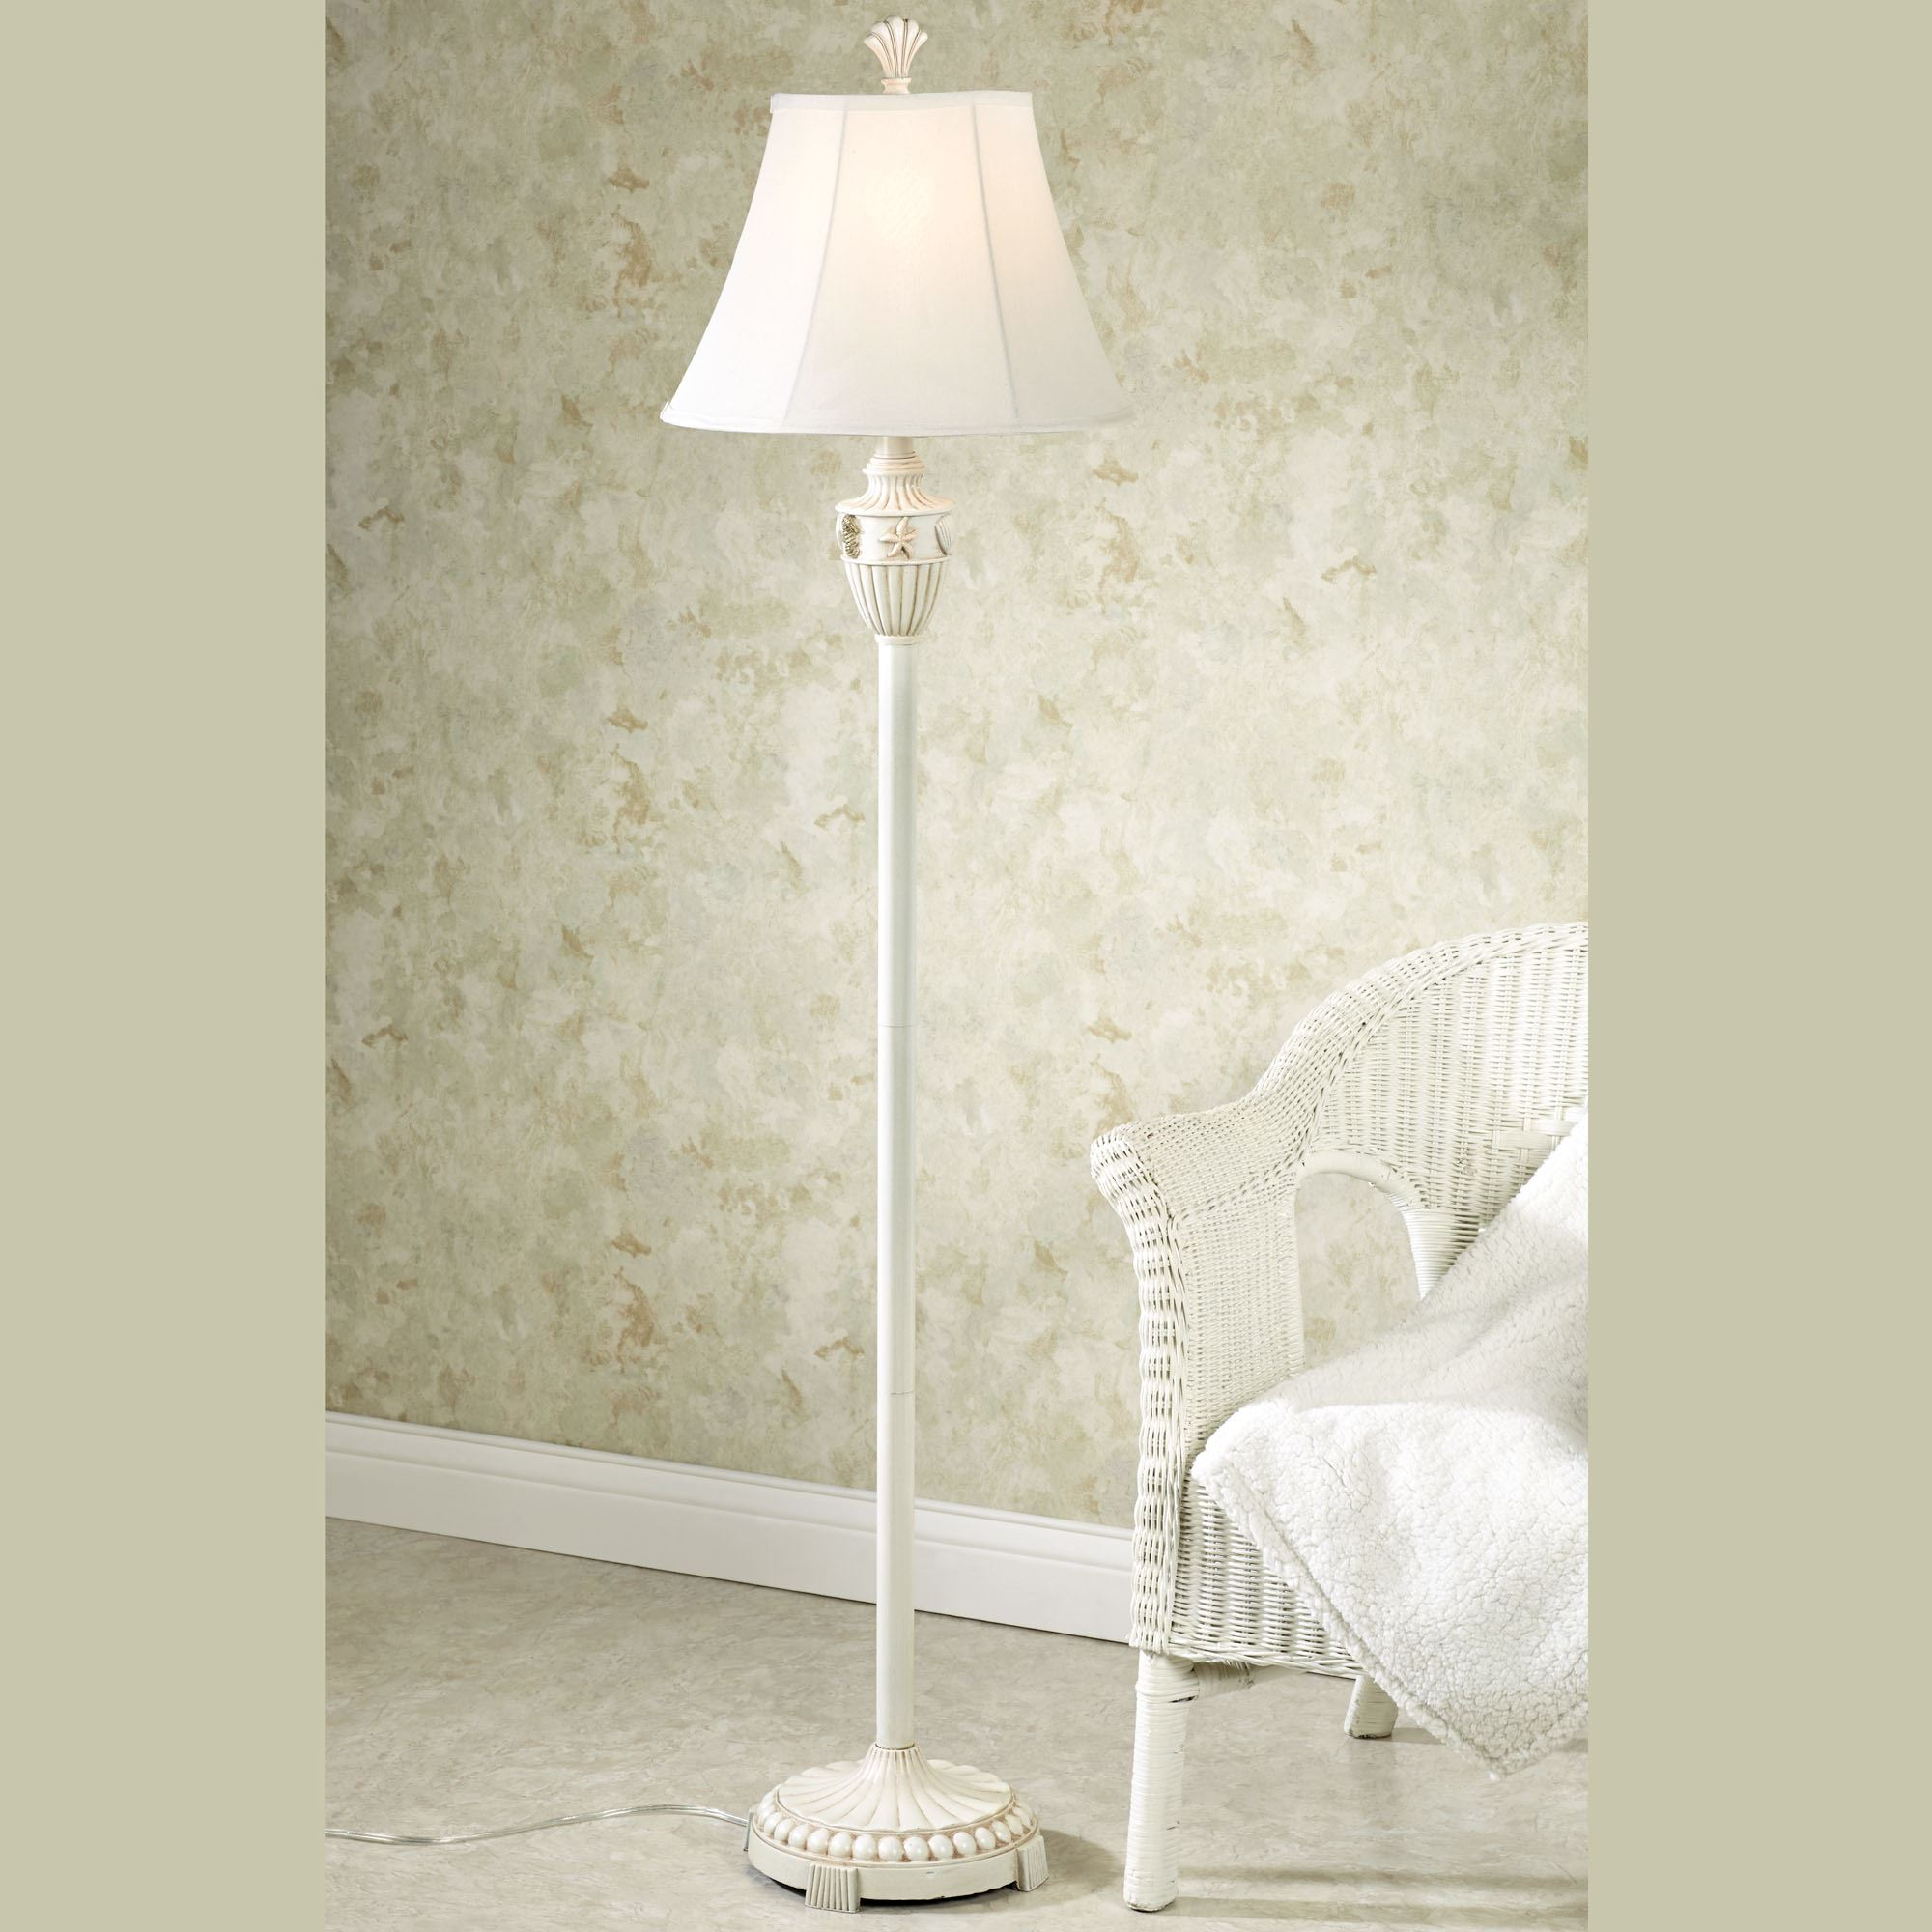 Ceiling wall lighting floor lamps touch of class sand and shell coastal floor lamp with cfl bulb geotapseo Choice Image